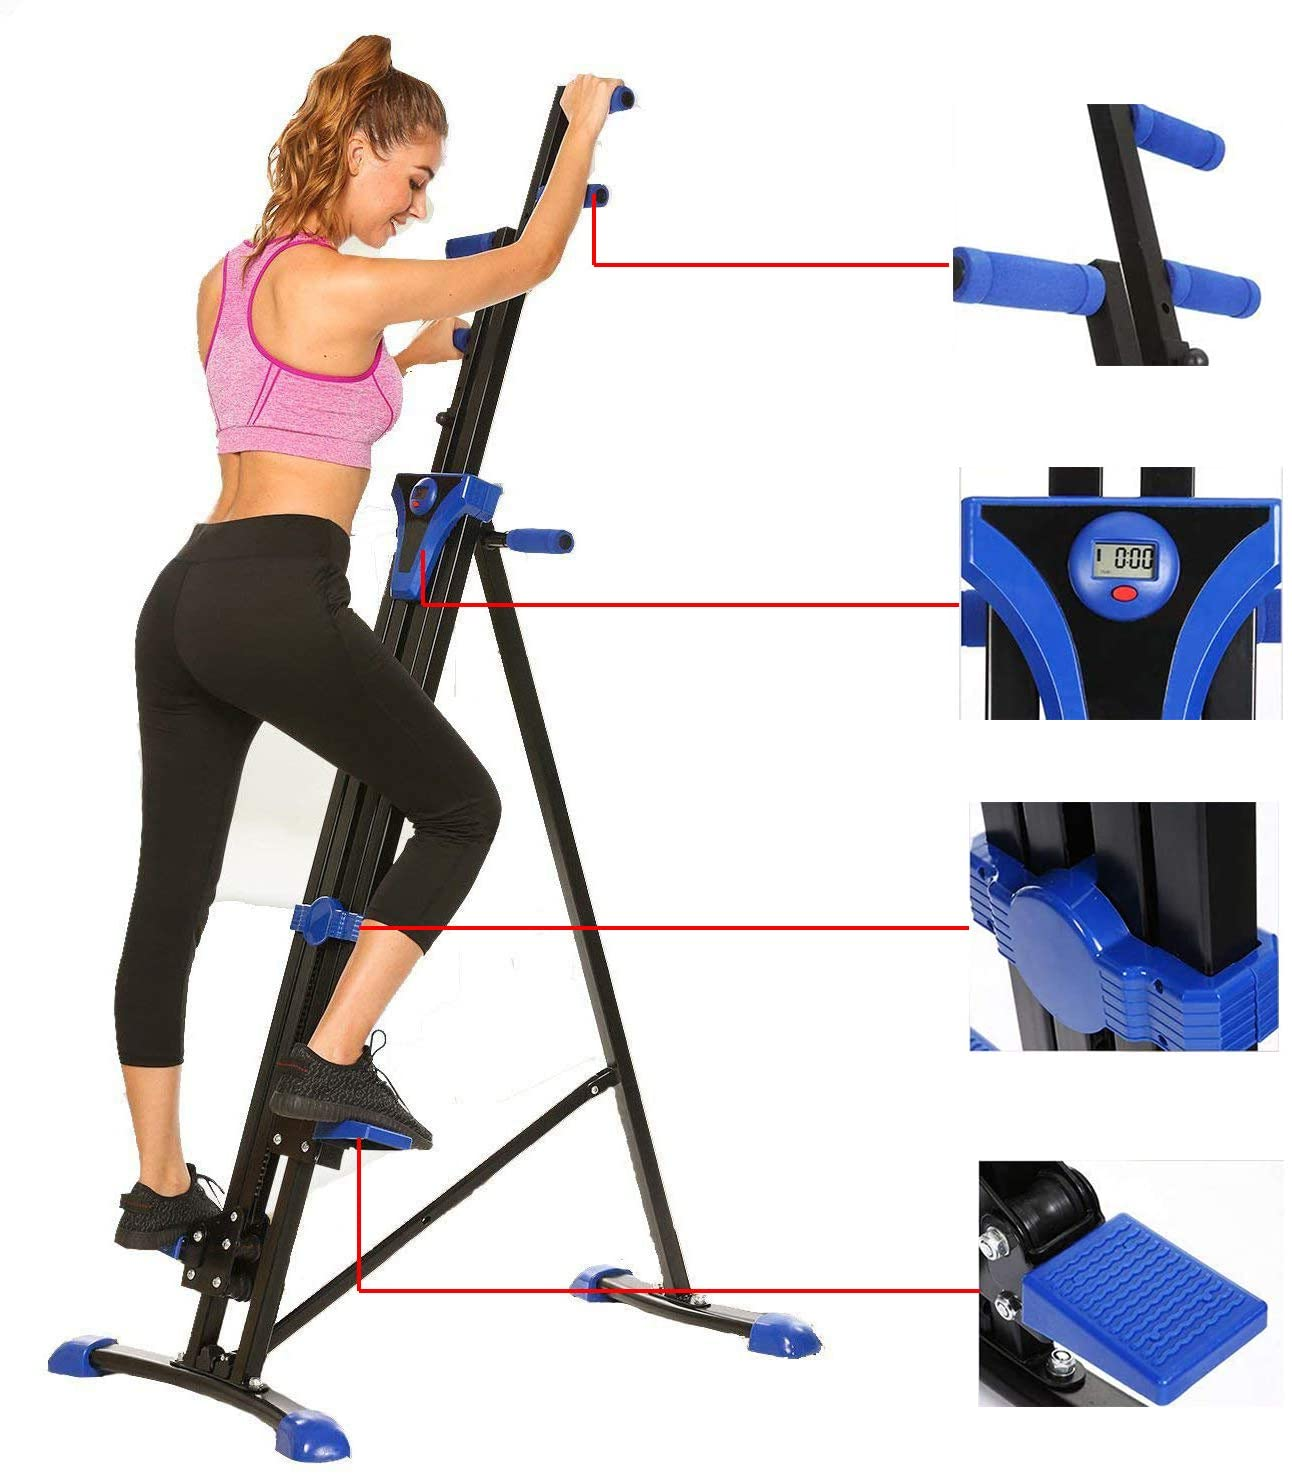 Steel Alloy Stair Climber Machine, Home Gym Exercise Folding Climbing Machine,Vertical Climbing Exercise Machine, Fitness Stepper Gym, Whole Body Cardio Workout Training